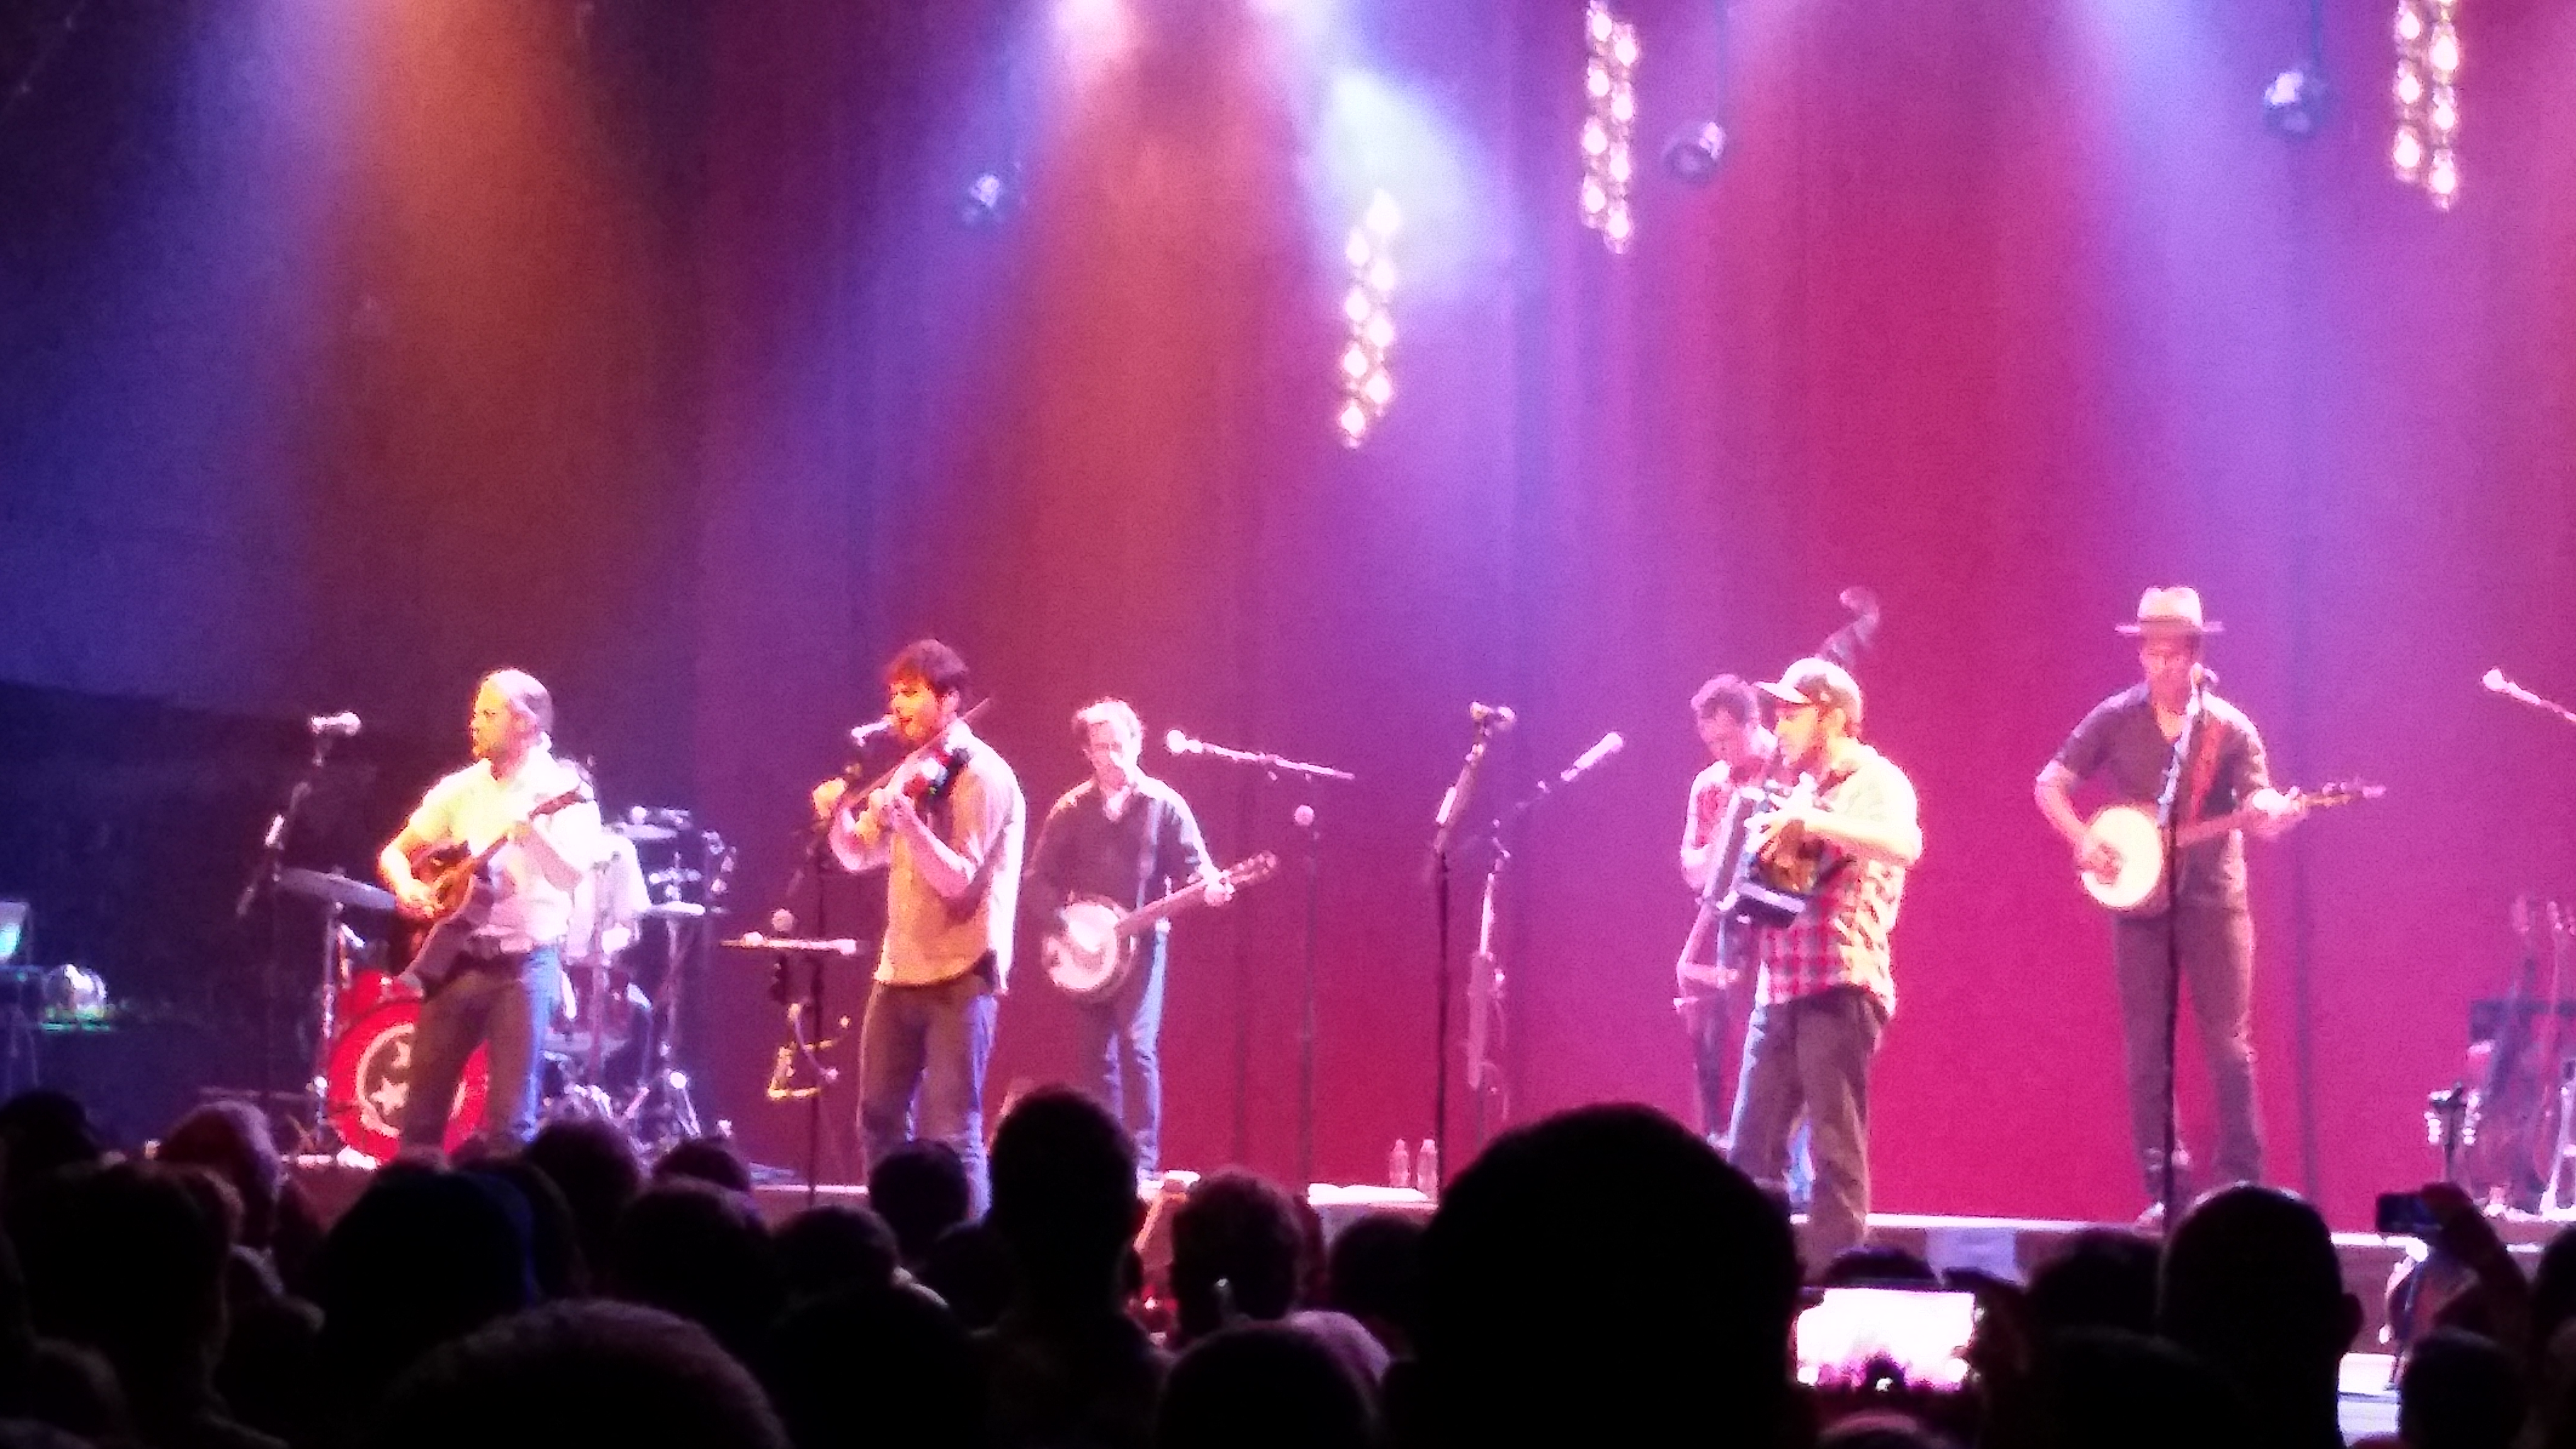 Old Crow Medicine Show - Dallas, TX - House Of Blues 7/11